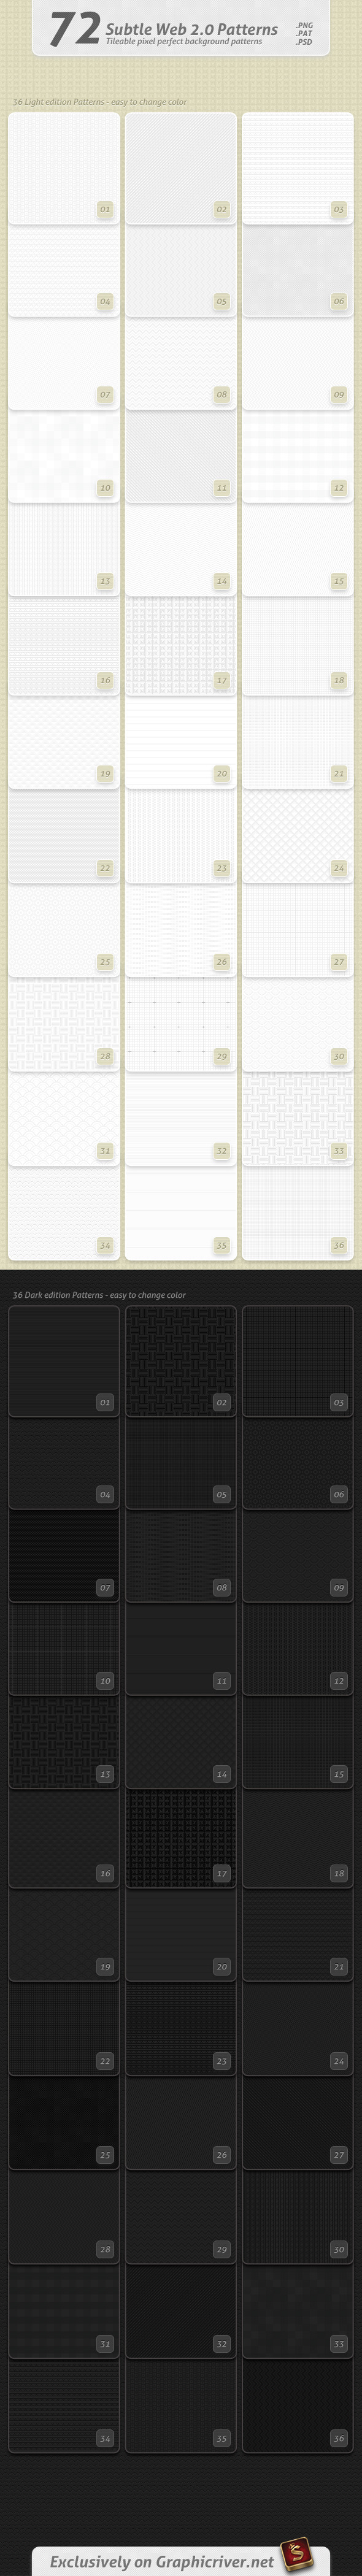 72 Subtle Web 2.0 Patterns - Textures / Fills / Patterns Photoshop